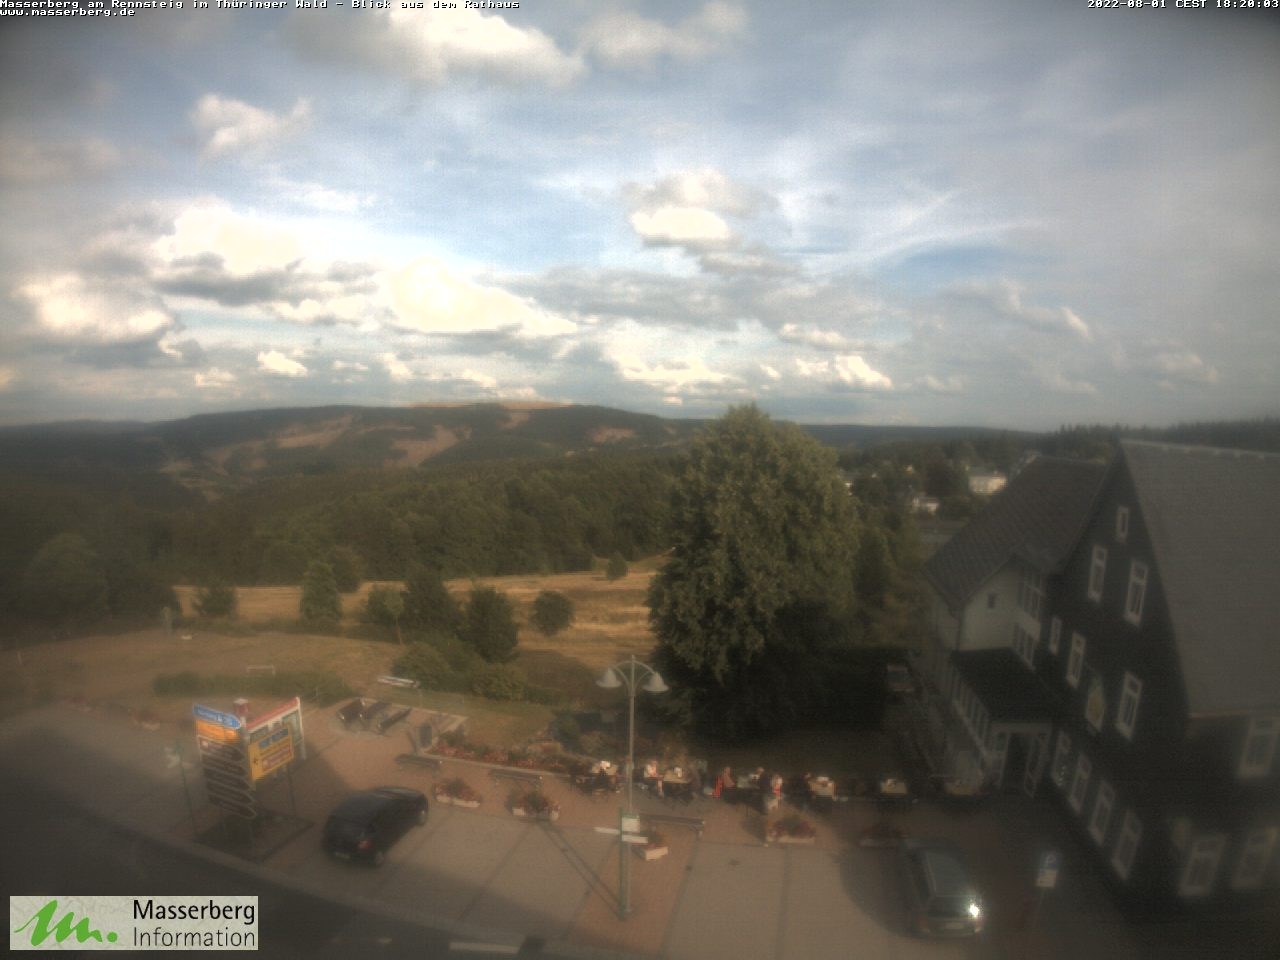 Webcam Masserberg Rathaus